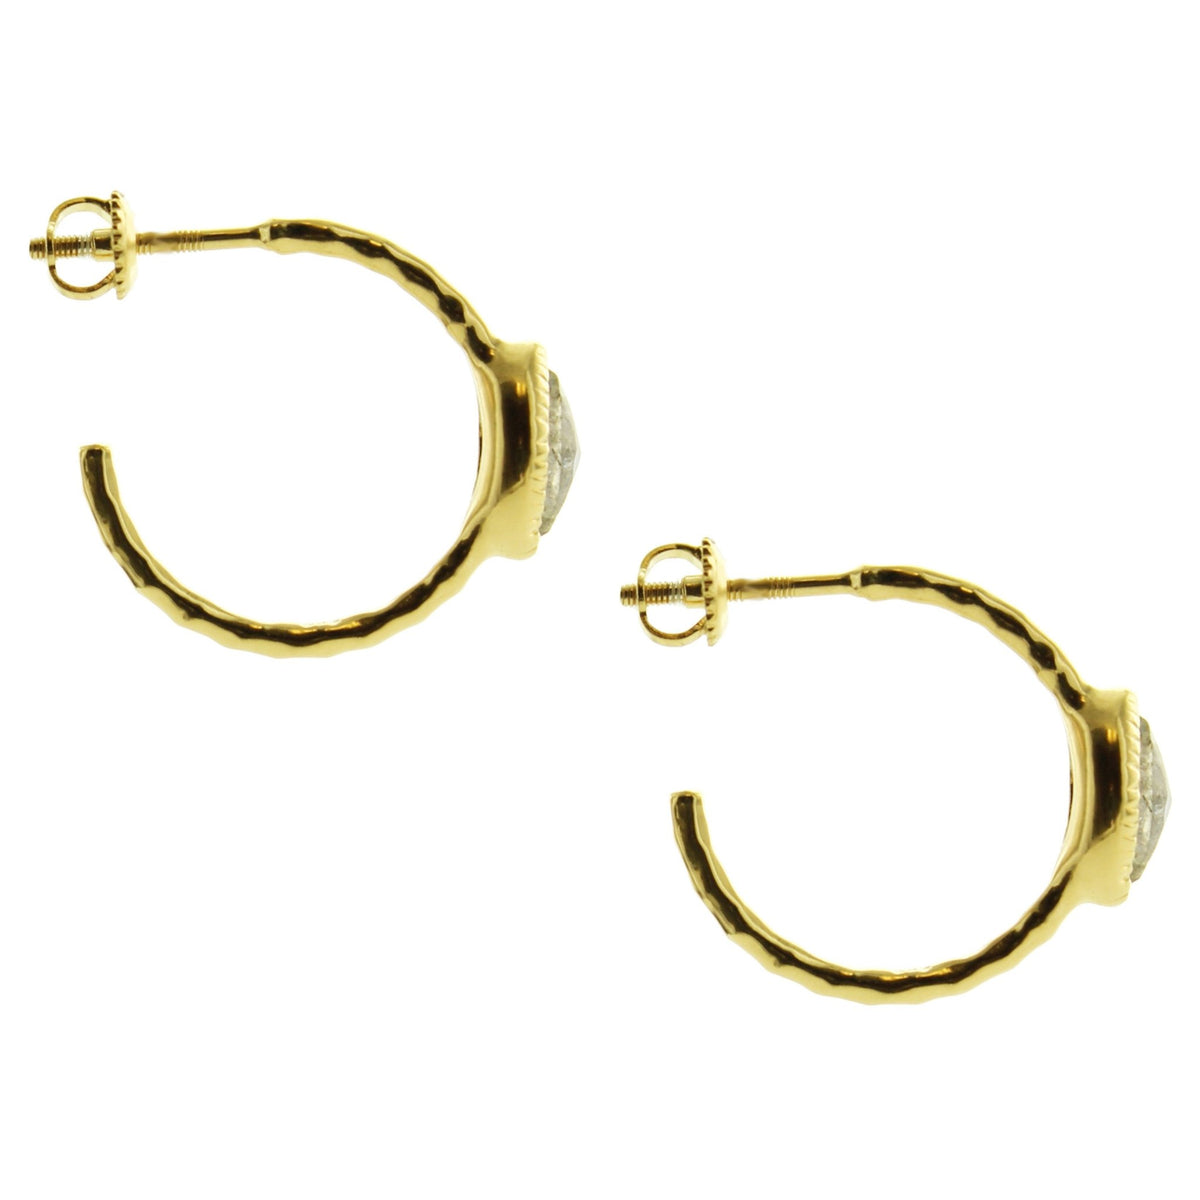 Fearless Marquise Hoop Earrings - White Topaz & Gold - SO PRETTY CARA COTTER